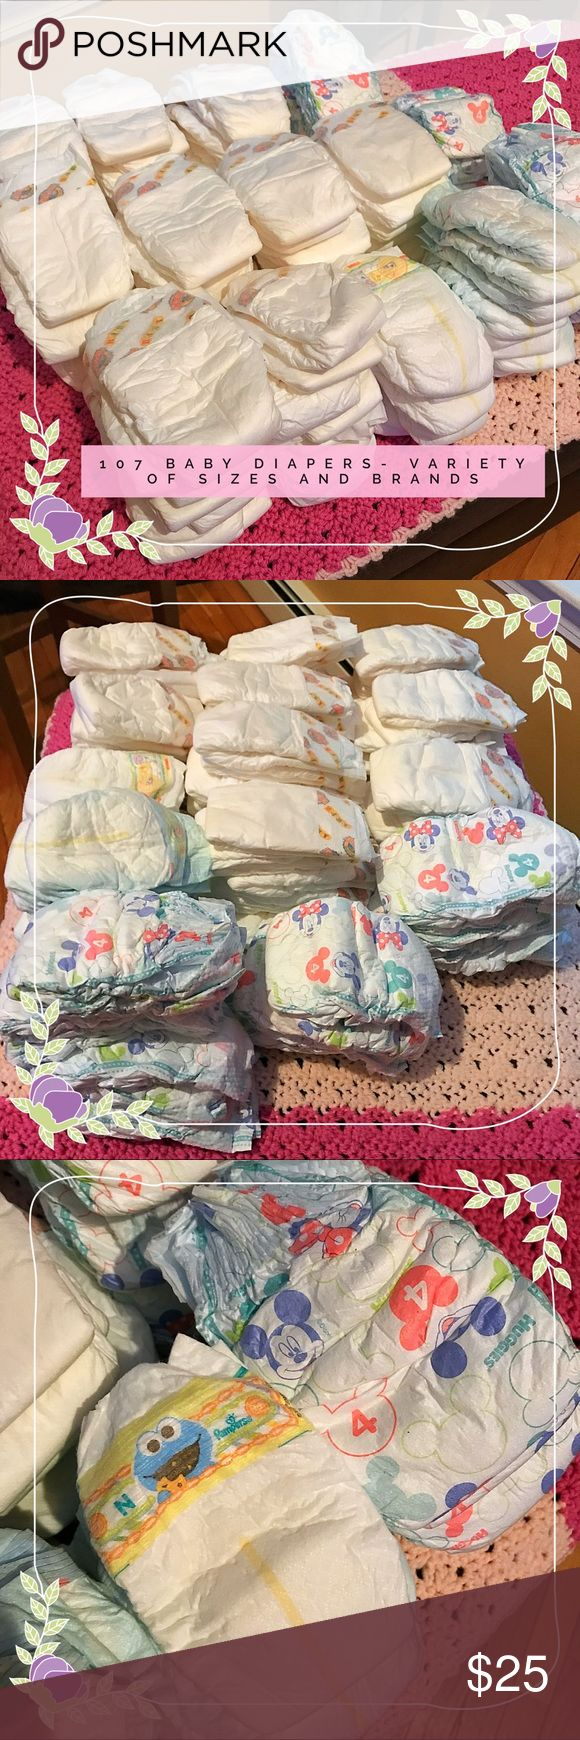 107 Baby Diapers Variety of Sizes and Brands Earth's Best (organic) , Pampers and Huggies Diapers. New Born through size 5 . Earths Best unfortunately does not have sizes on their individual diapers . I can only make an educated mothers guess that the largest size is a 5- 107 total- ****priced to sell Variety of Brands Other